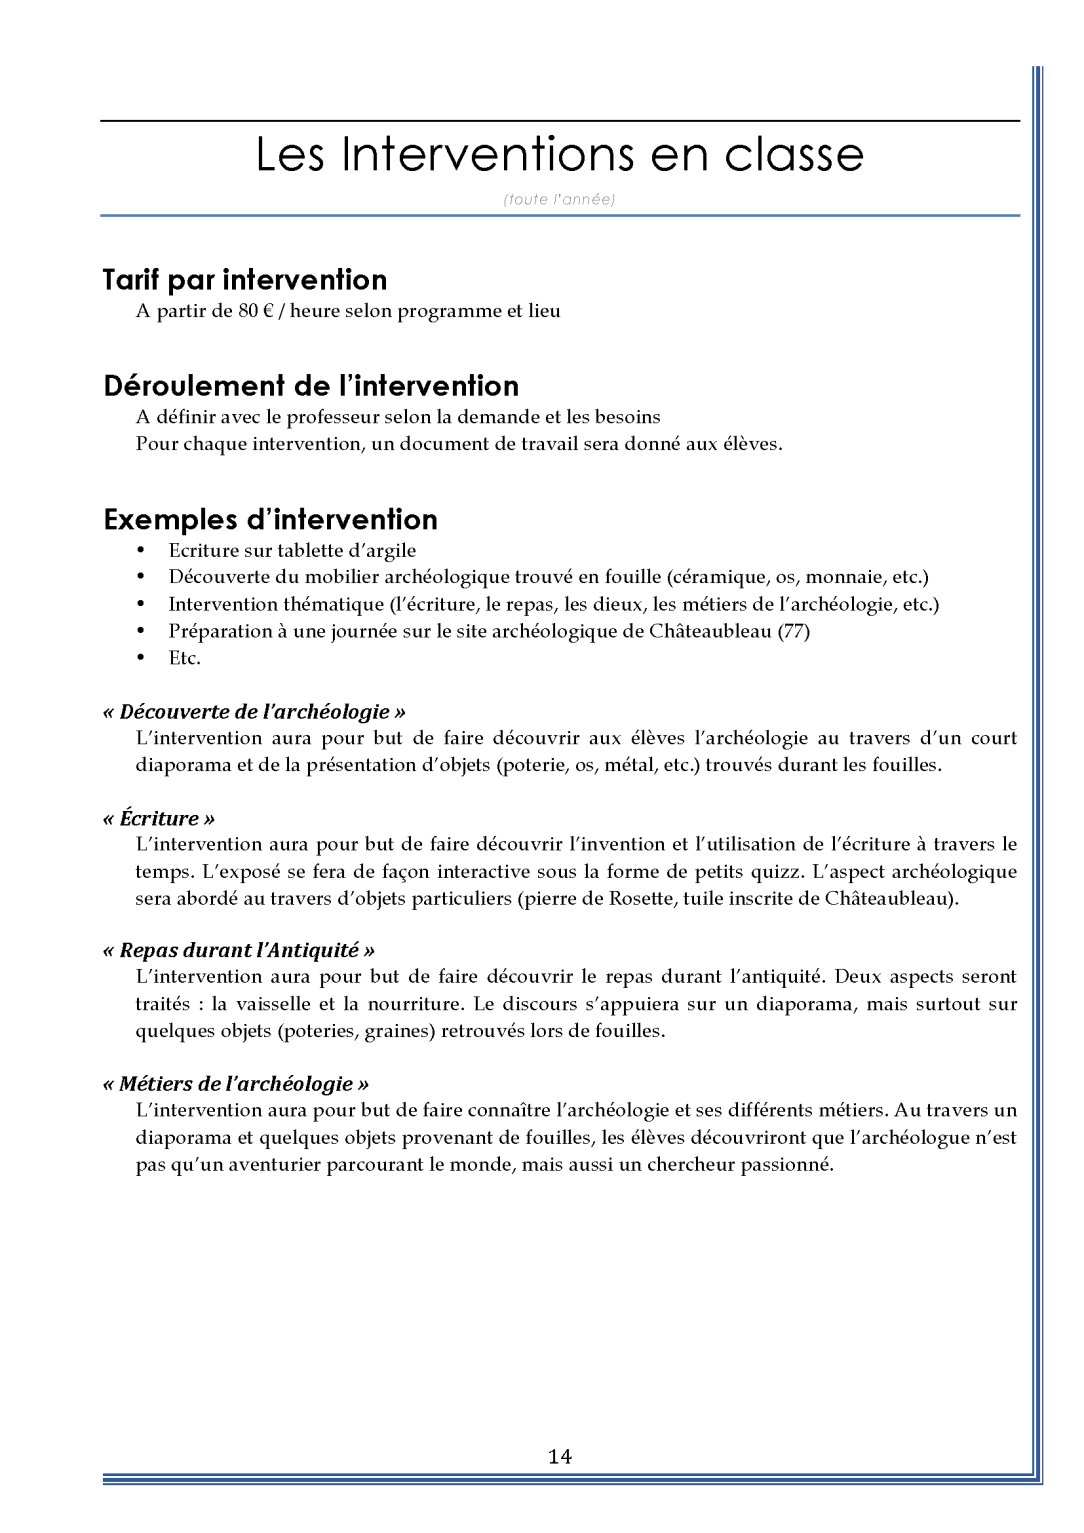 CATALOGUE DES ATELIERS 2015_2016_Page_14.png